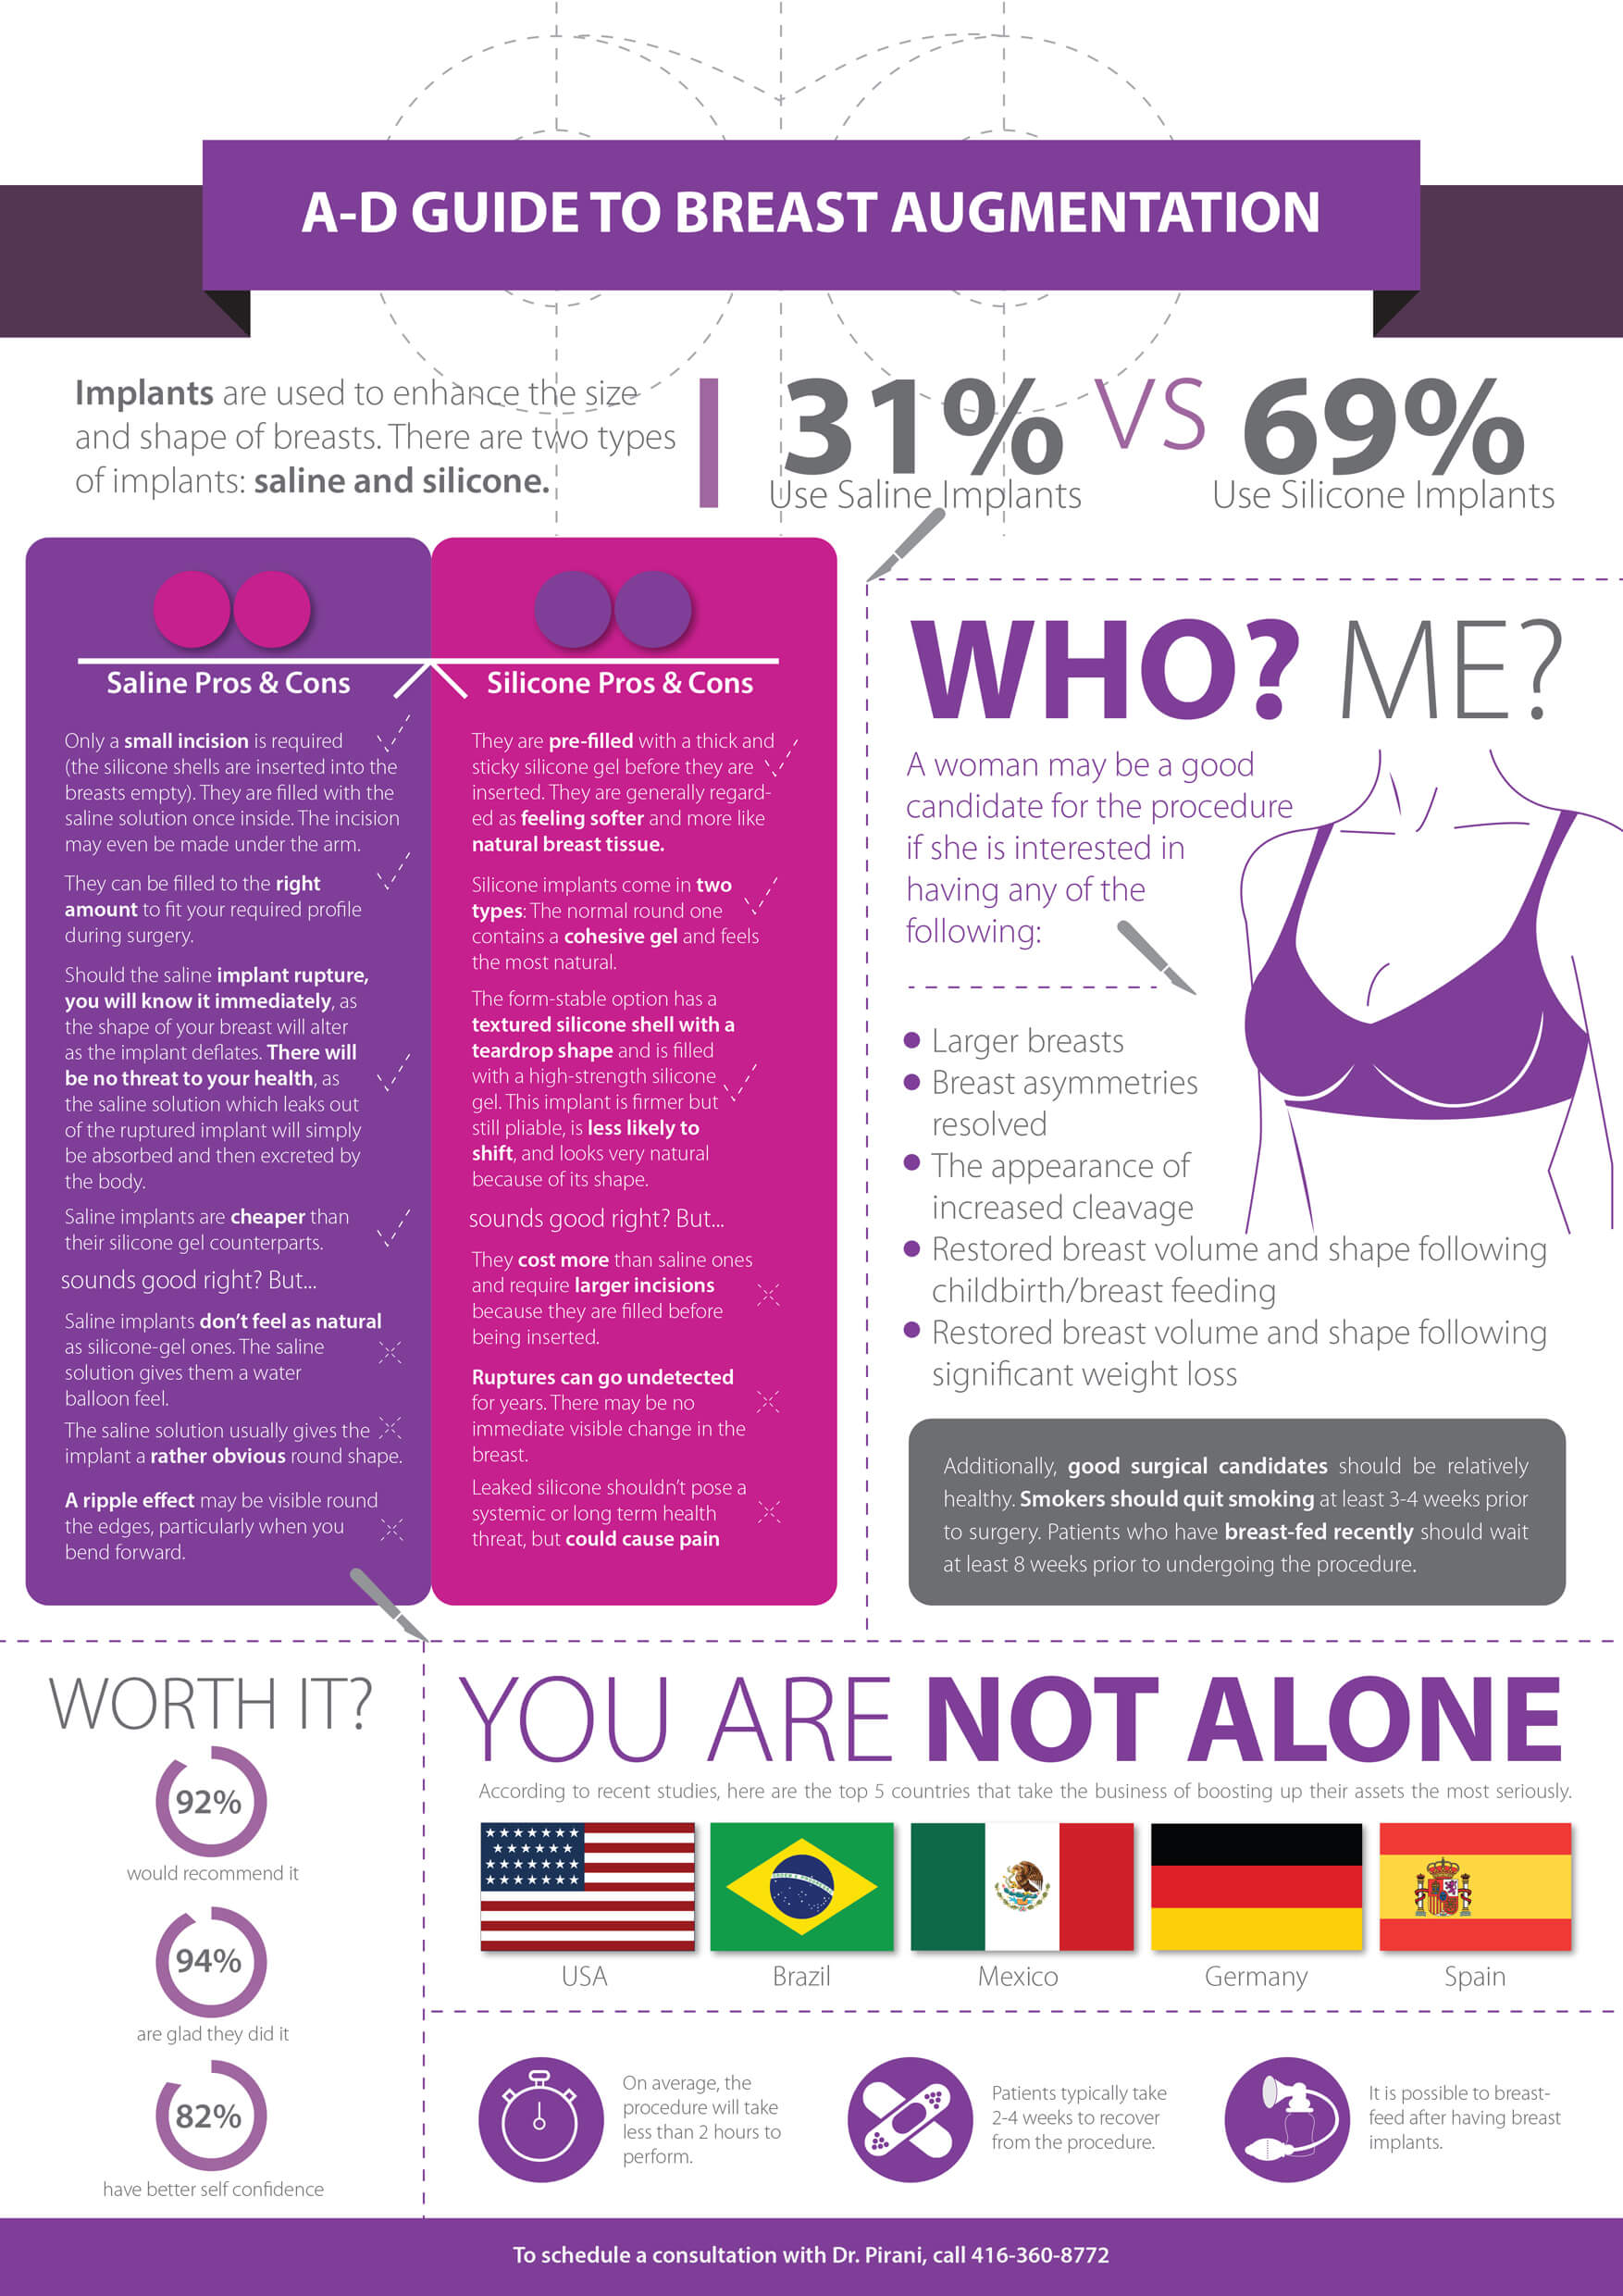 Guide-to-Breast-Augmentation-infographic-plaza